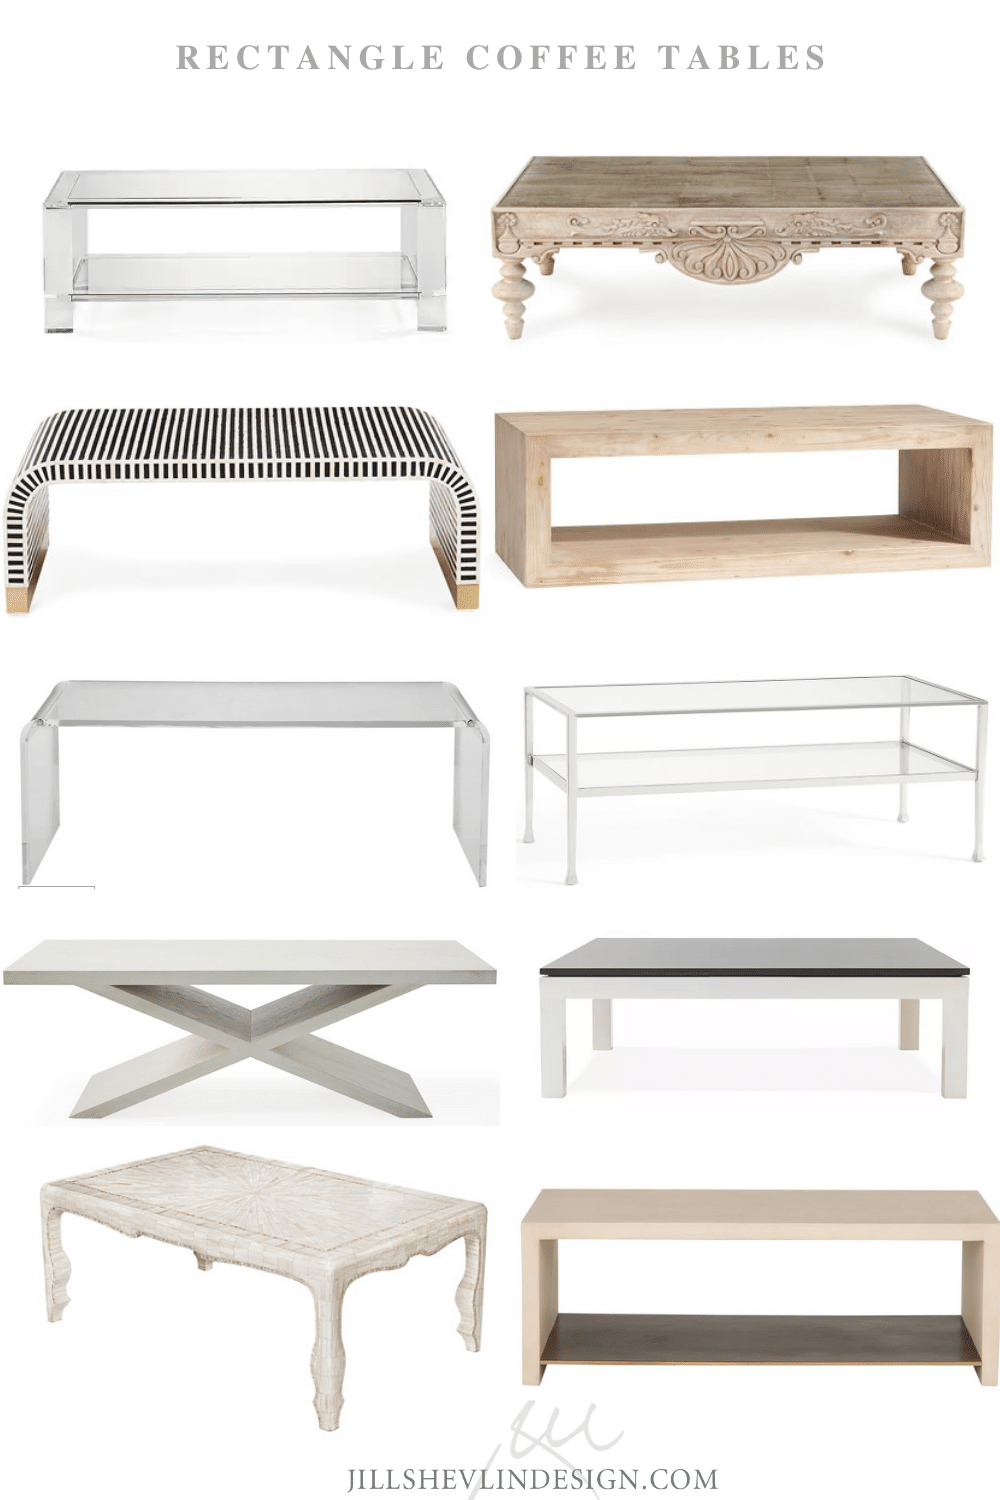 Shop Rectangle Coffee table Vero Beach Designer Jill Shevlin design Home Furniture